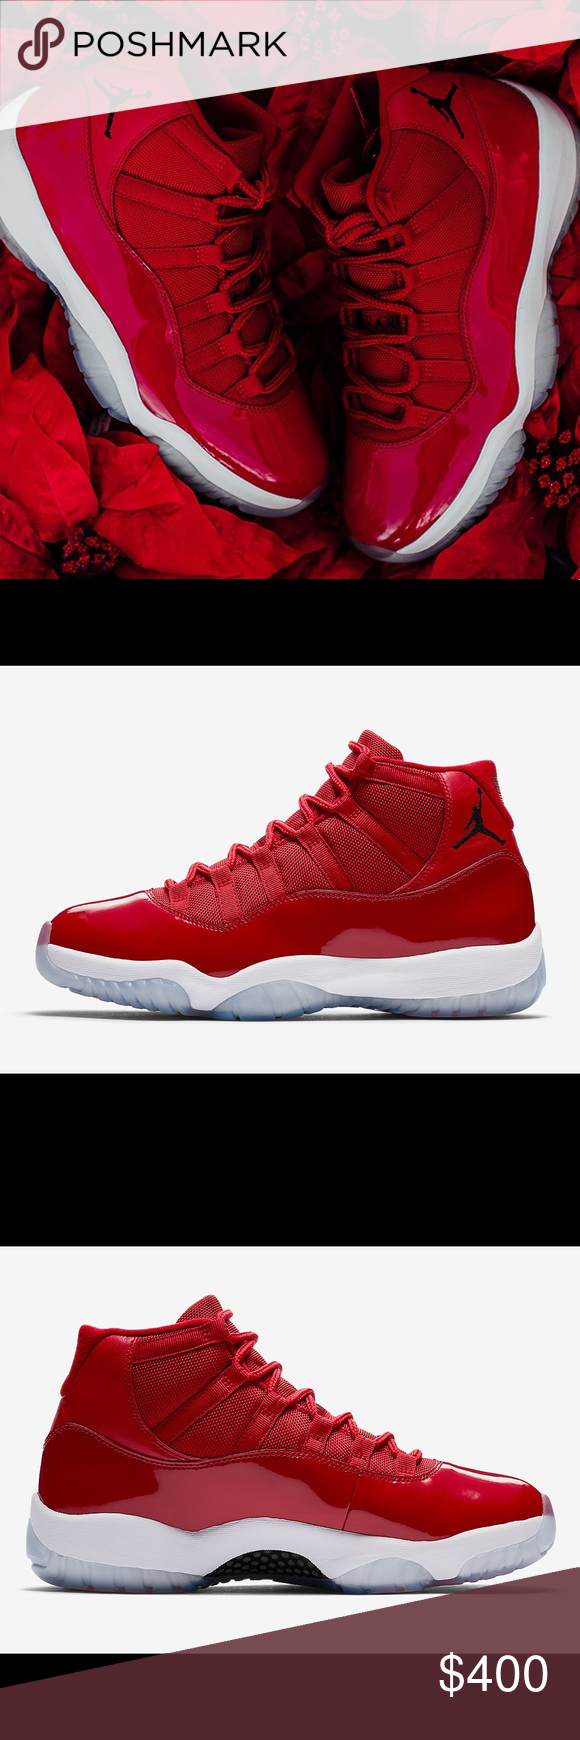 "795c24661445 AIR JORDAN 11 ""WIN LIKE  96"" The ""Win Like  96"" colorway is sure to be one  of the most notable releases of this holiday season. It features a vibrant  red ..."